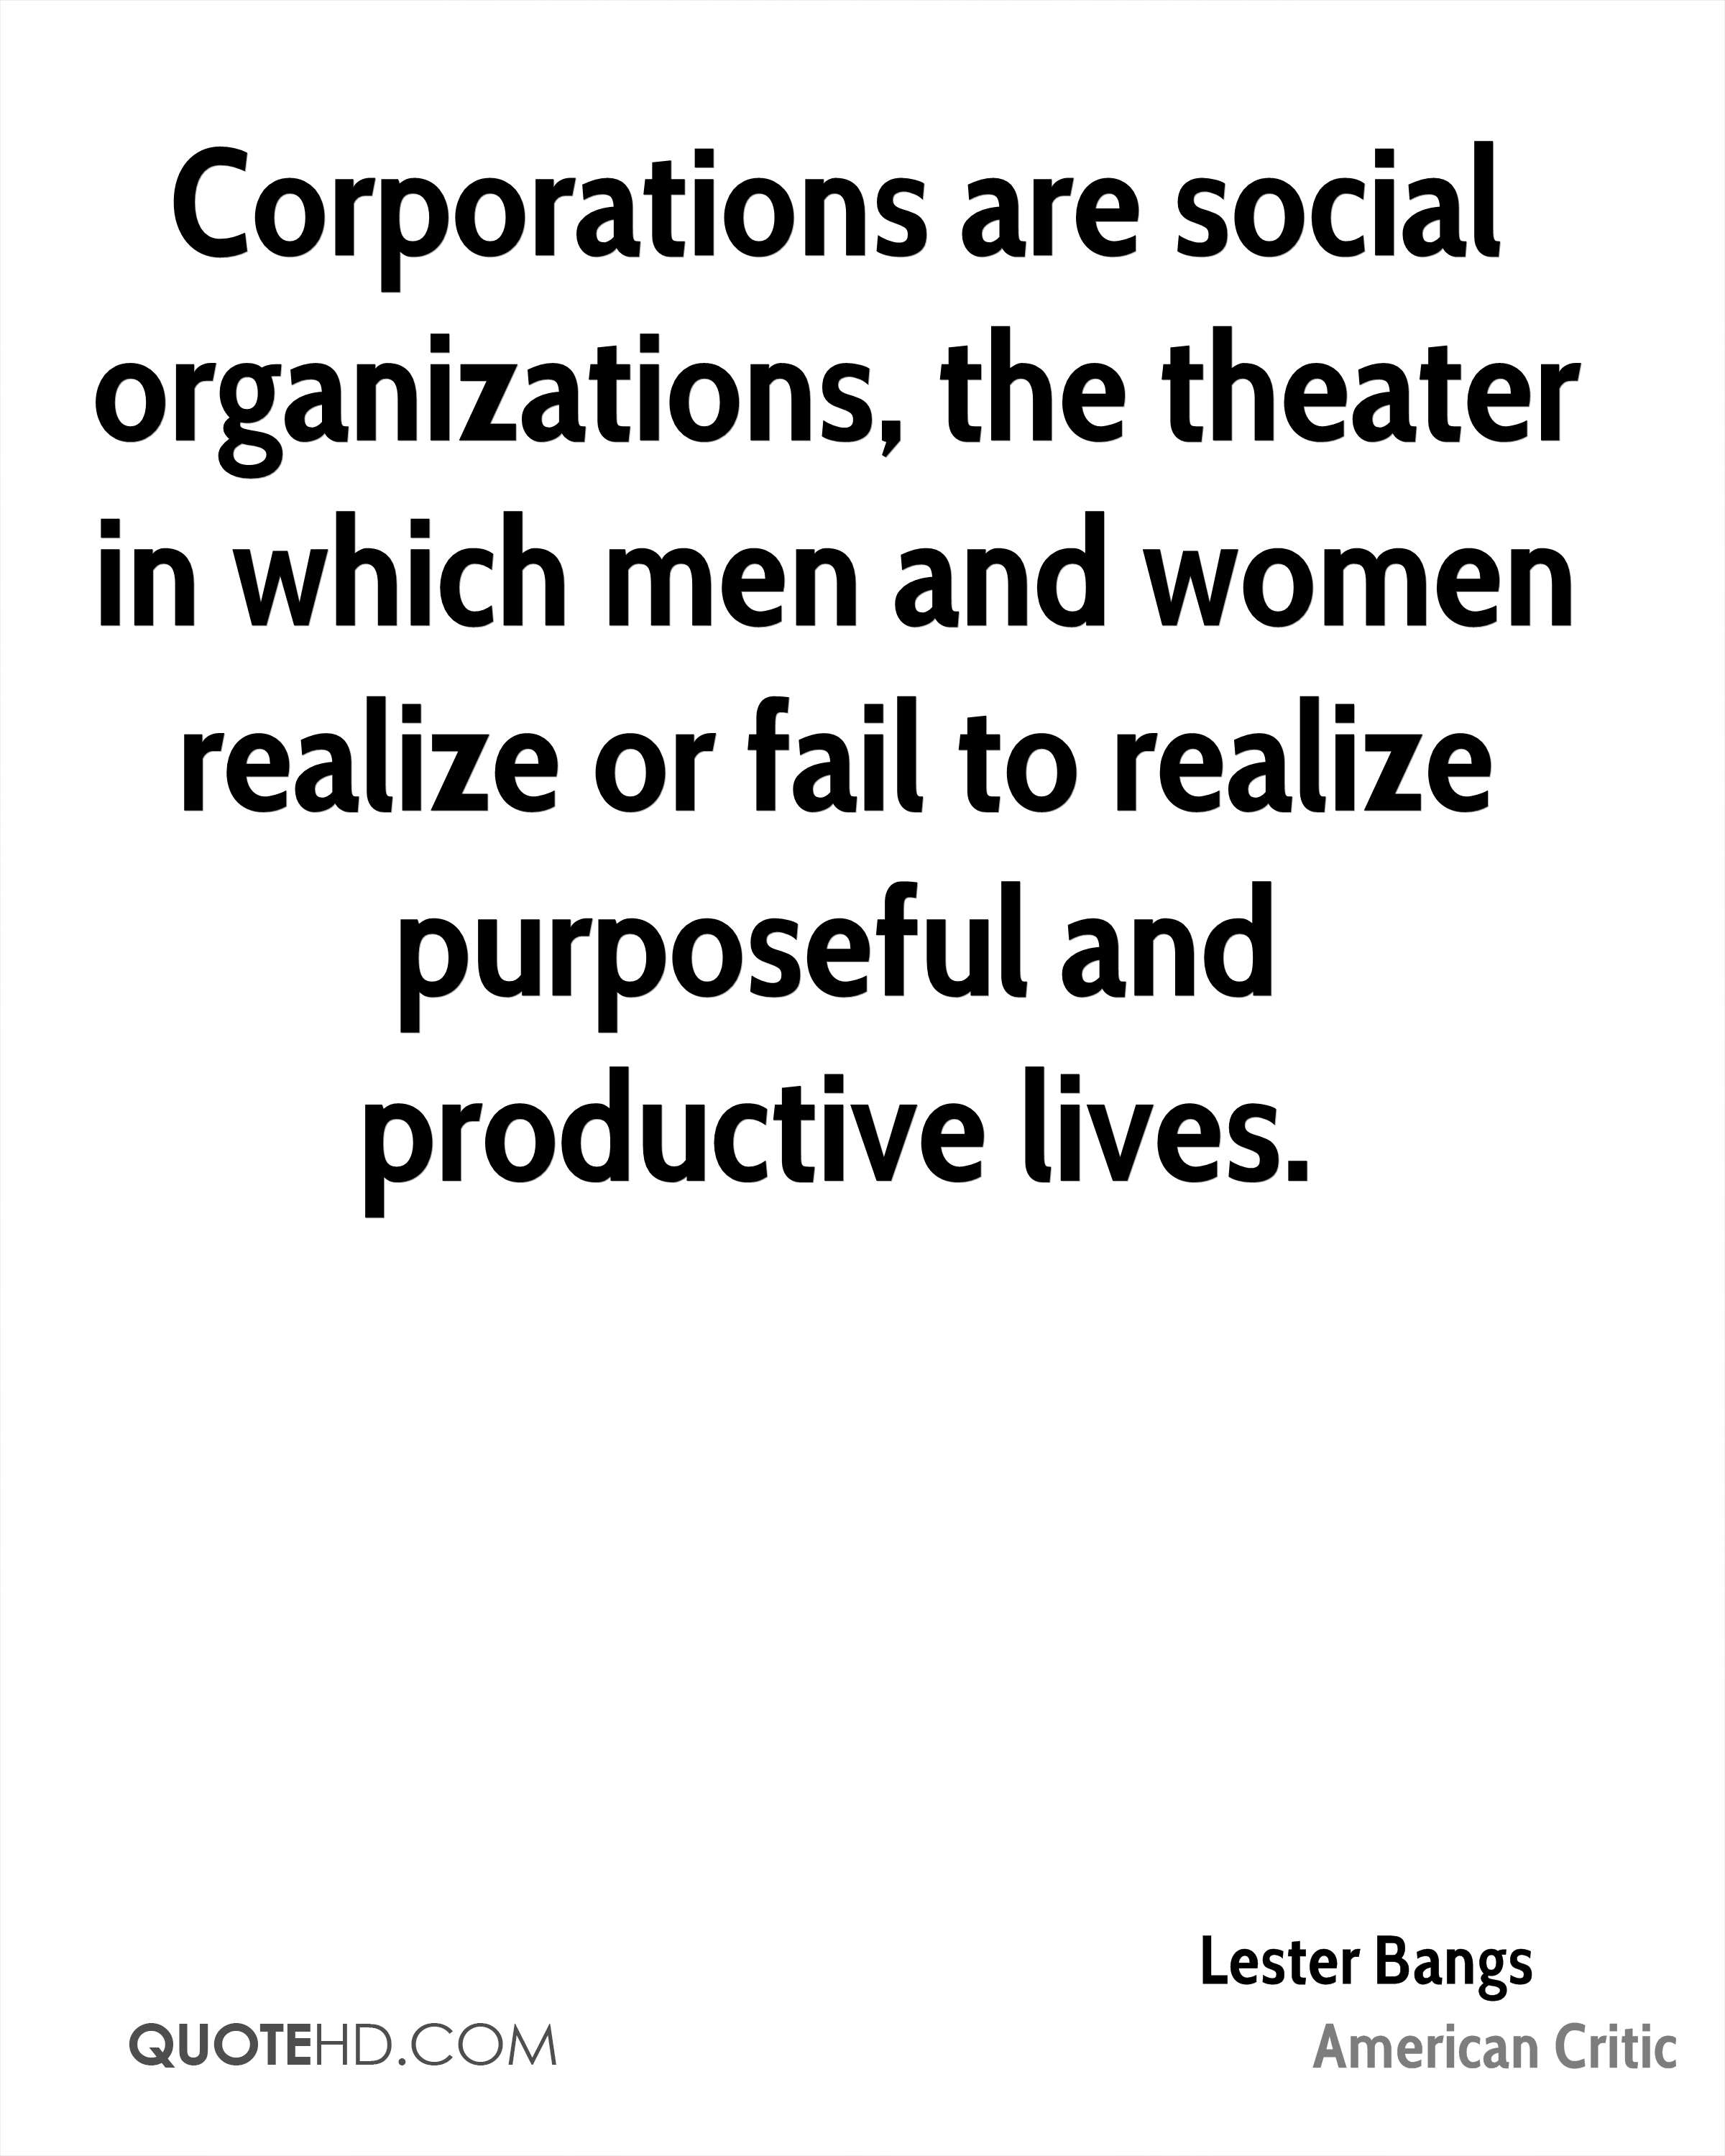 Corporations are social organizations, the theater in which men and women realize or fail to realize purposeful and productive lives.